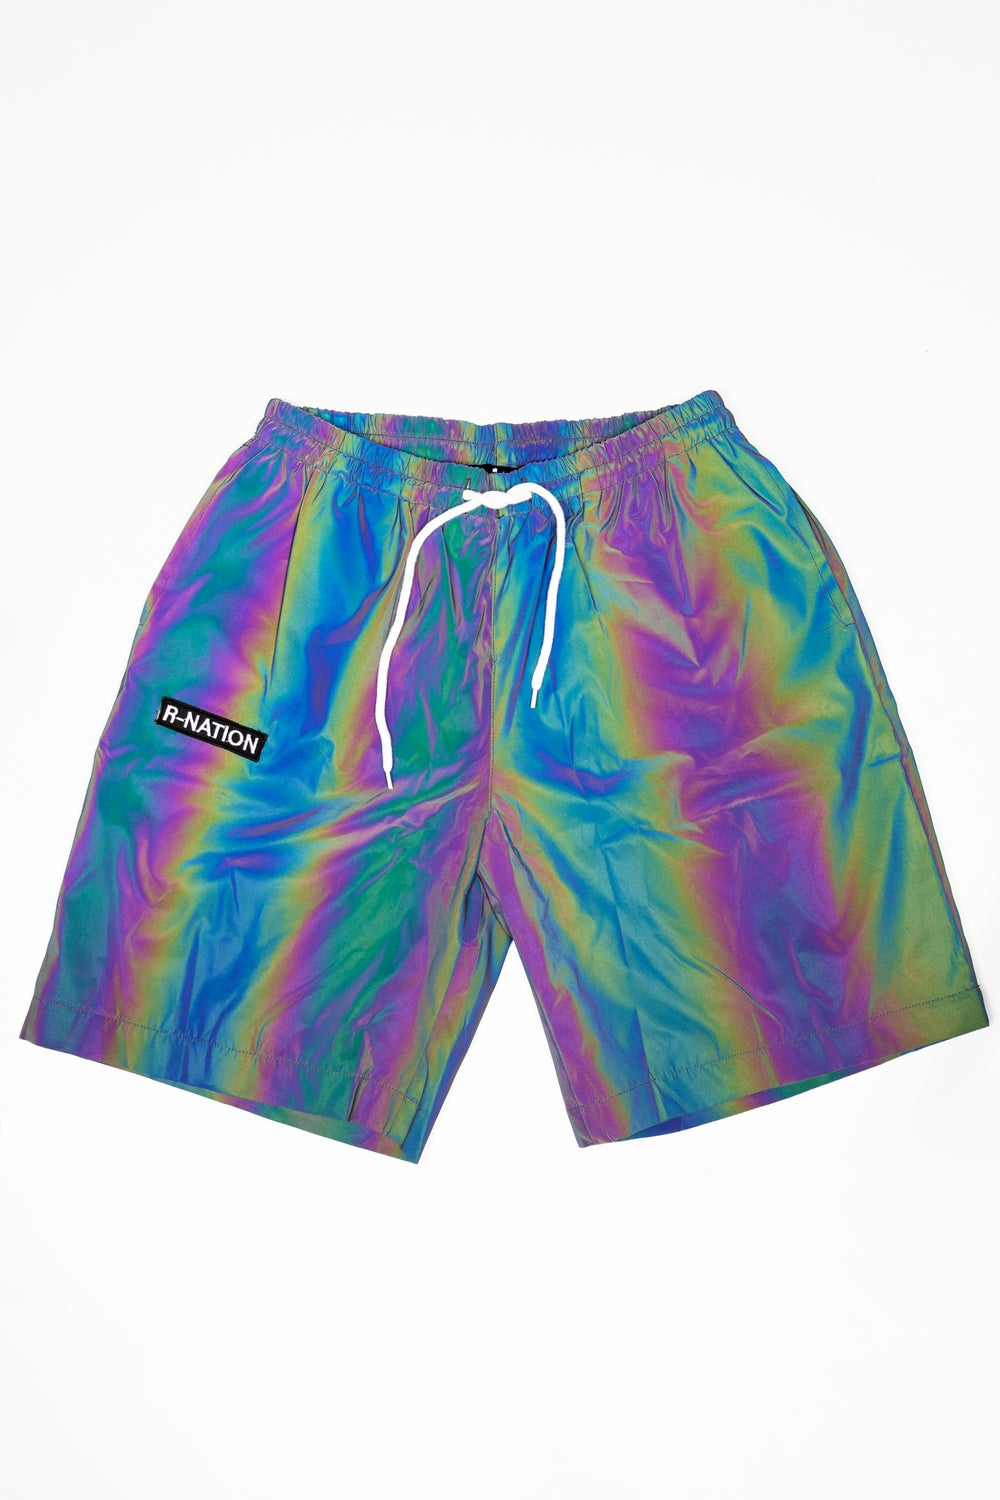 Image of R-NATION RAINBOW 3M SHORTS